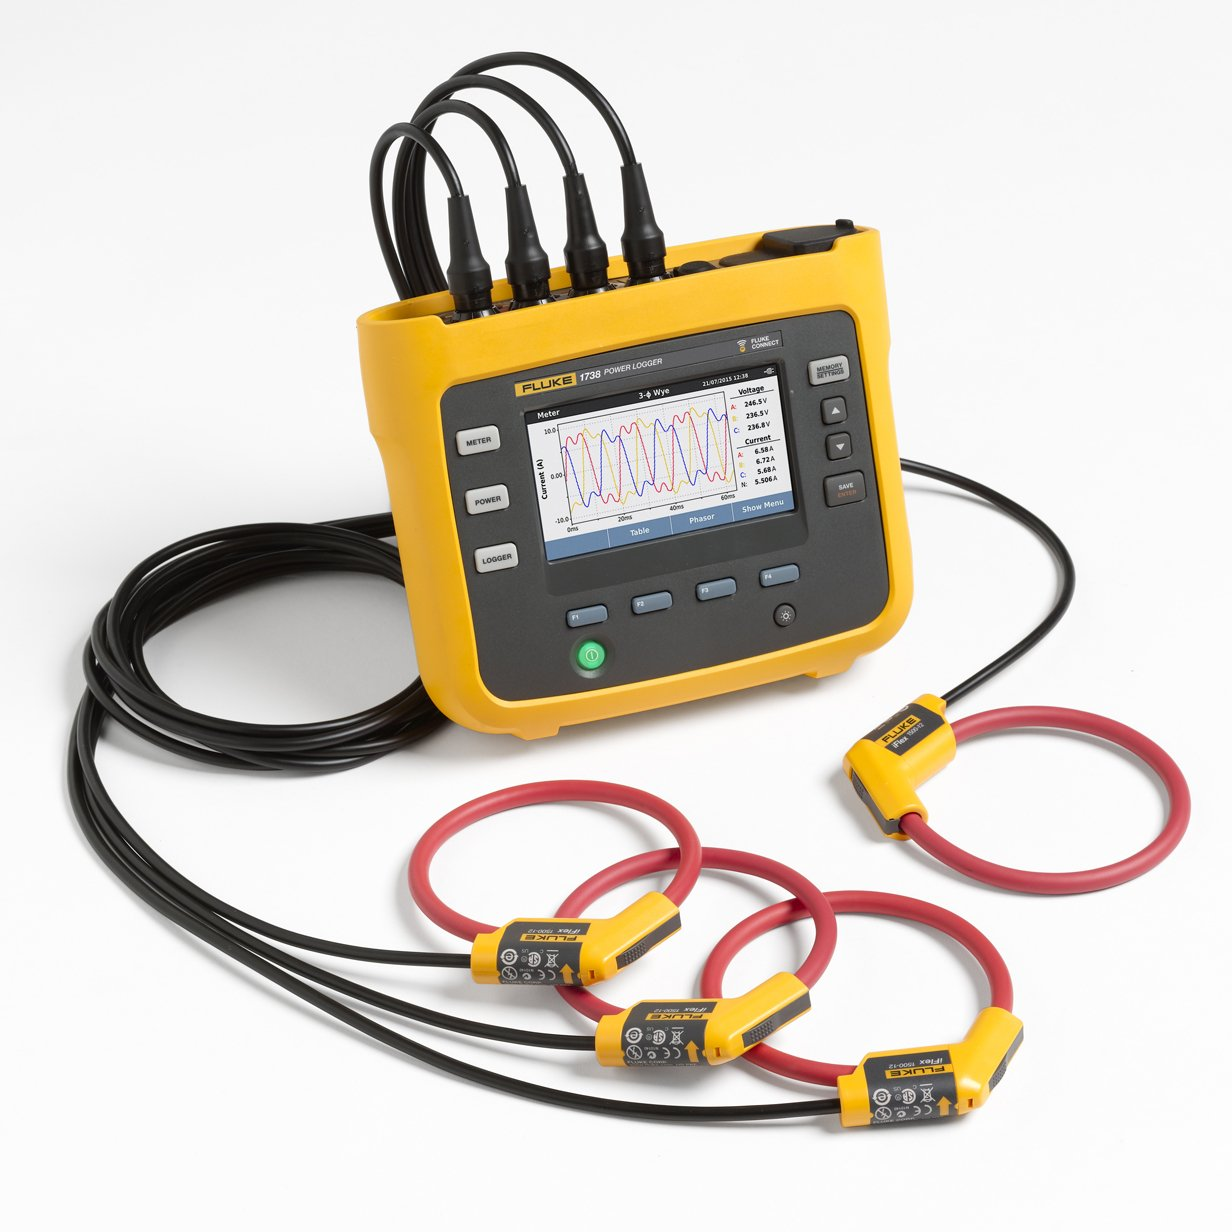 3 Phase Power Meter : Portable power meters in ireland fluke unipower gossen